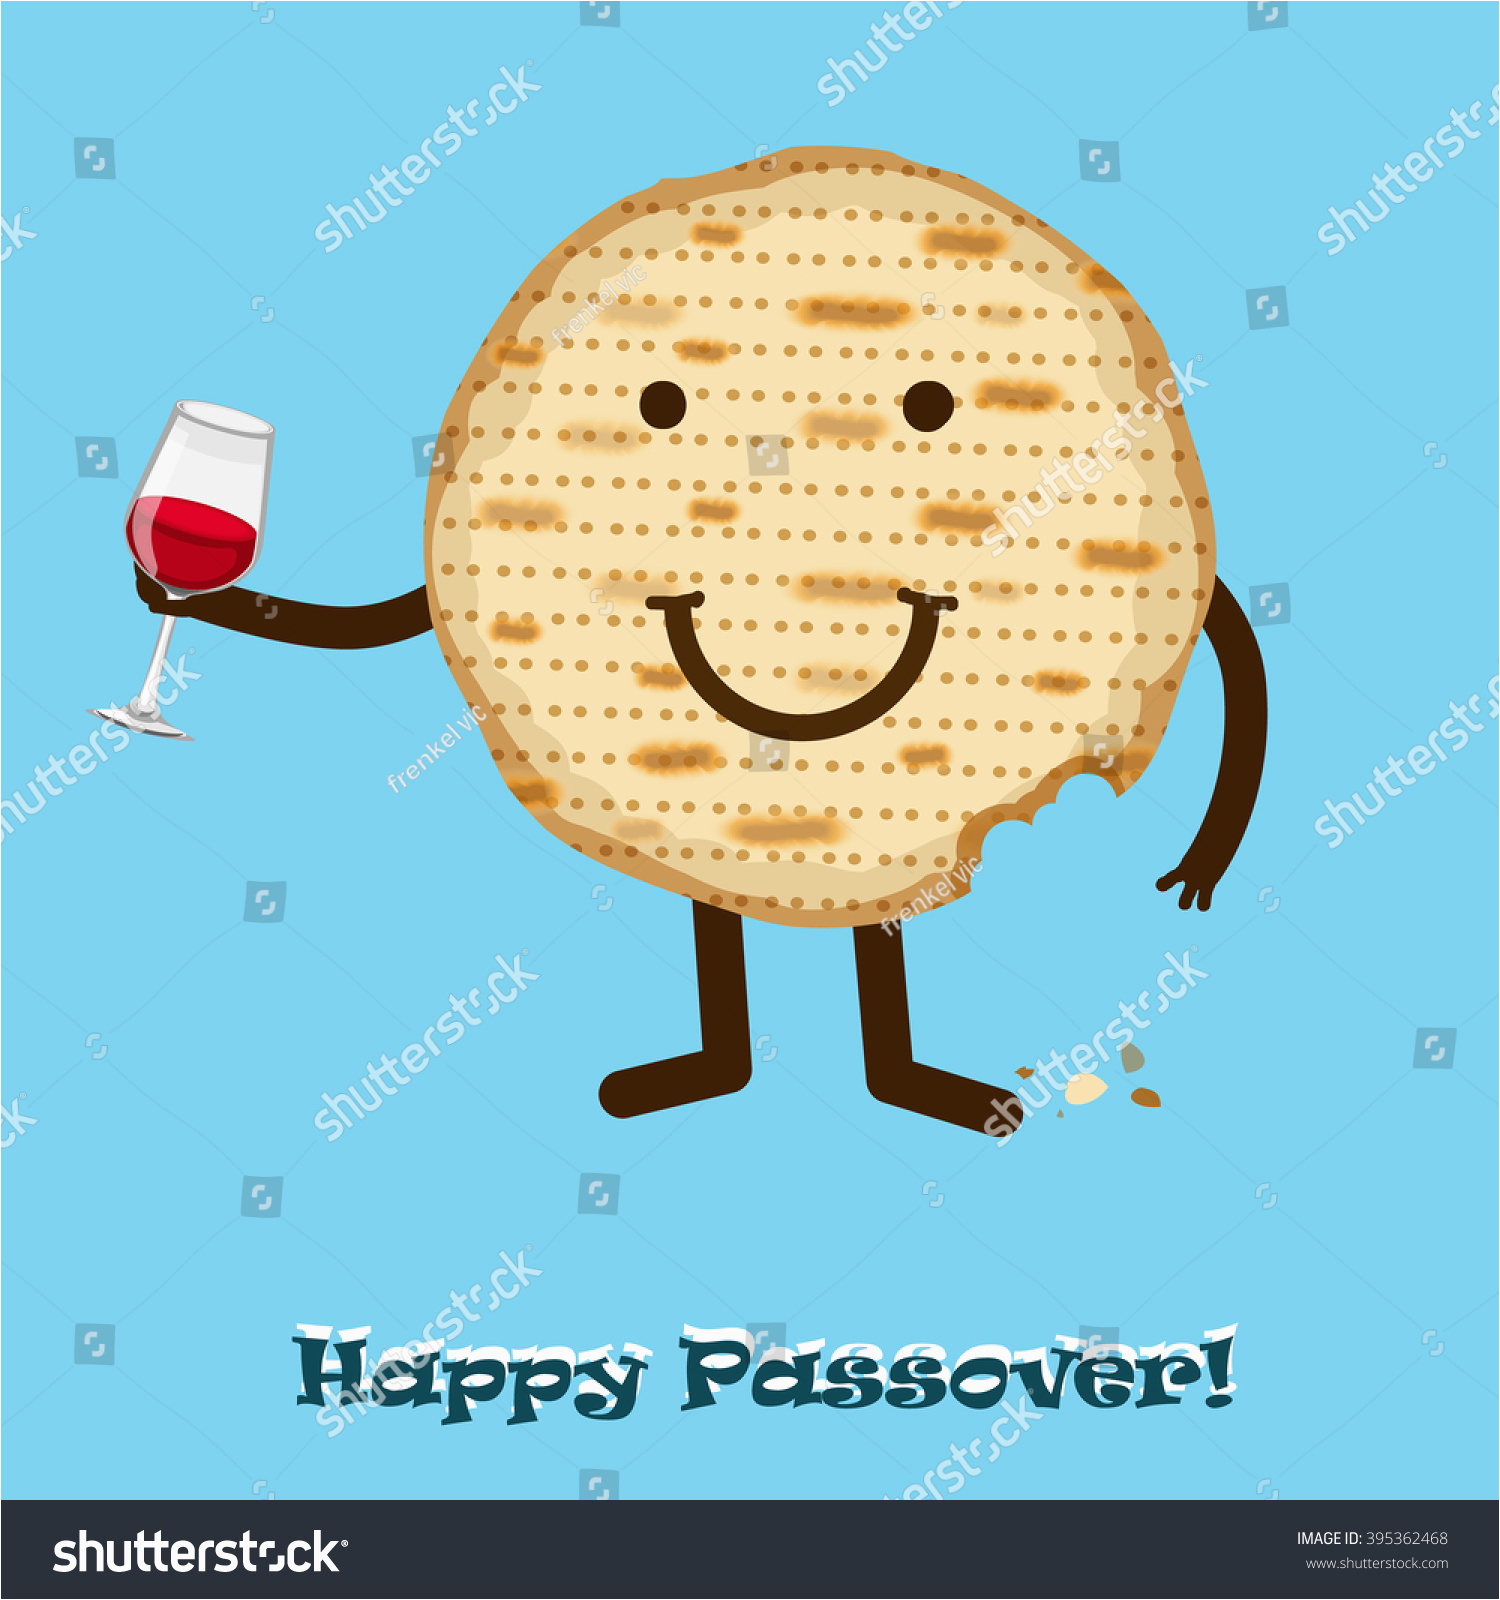 Jewish Birthday Cards Funny Happy Passover Greeting Card Stock Vector